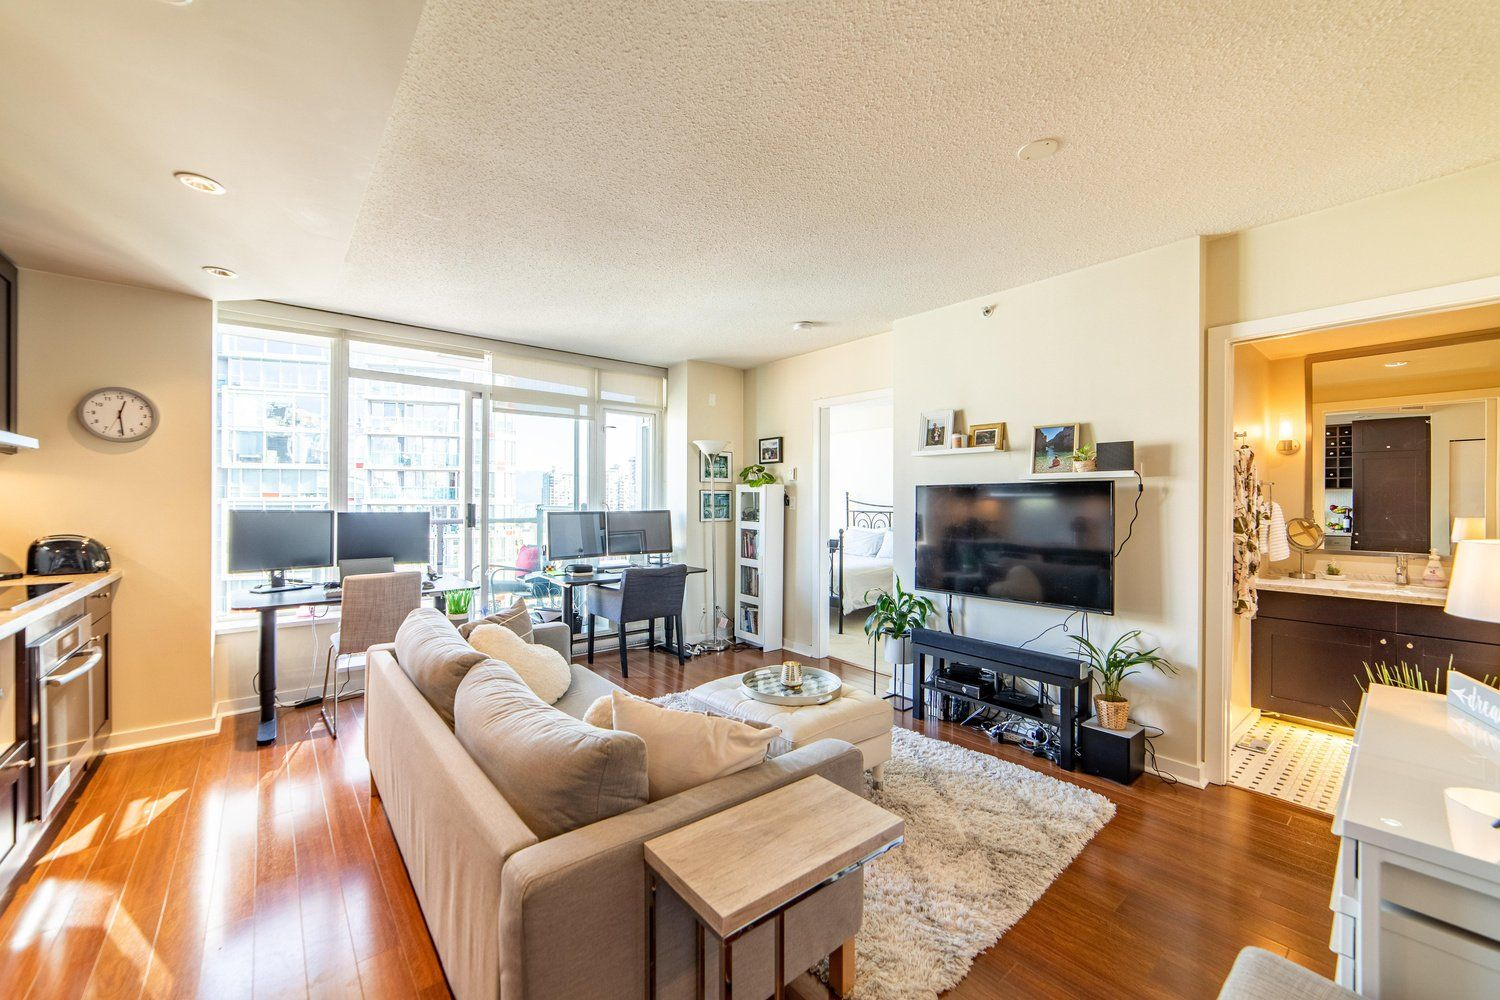 """Main Photo: 2003 821 CAMBIE Street in Vancouver: Downtown VW Condo for sale in """"Raffles on Robson"""" (Vancouver West)  : MLS®# R2512191"""